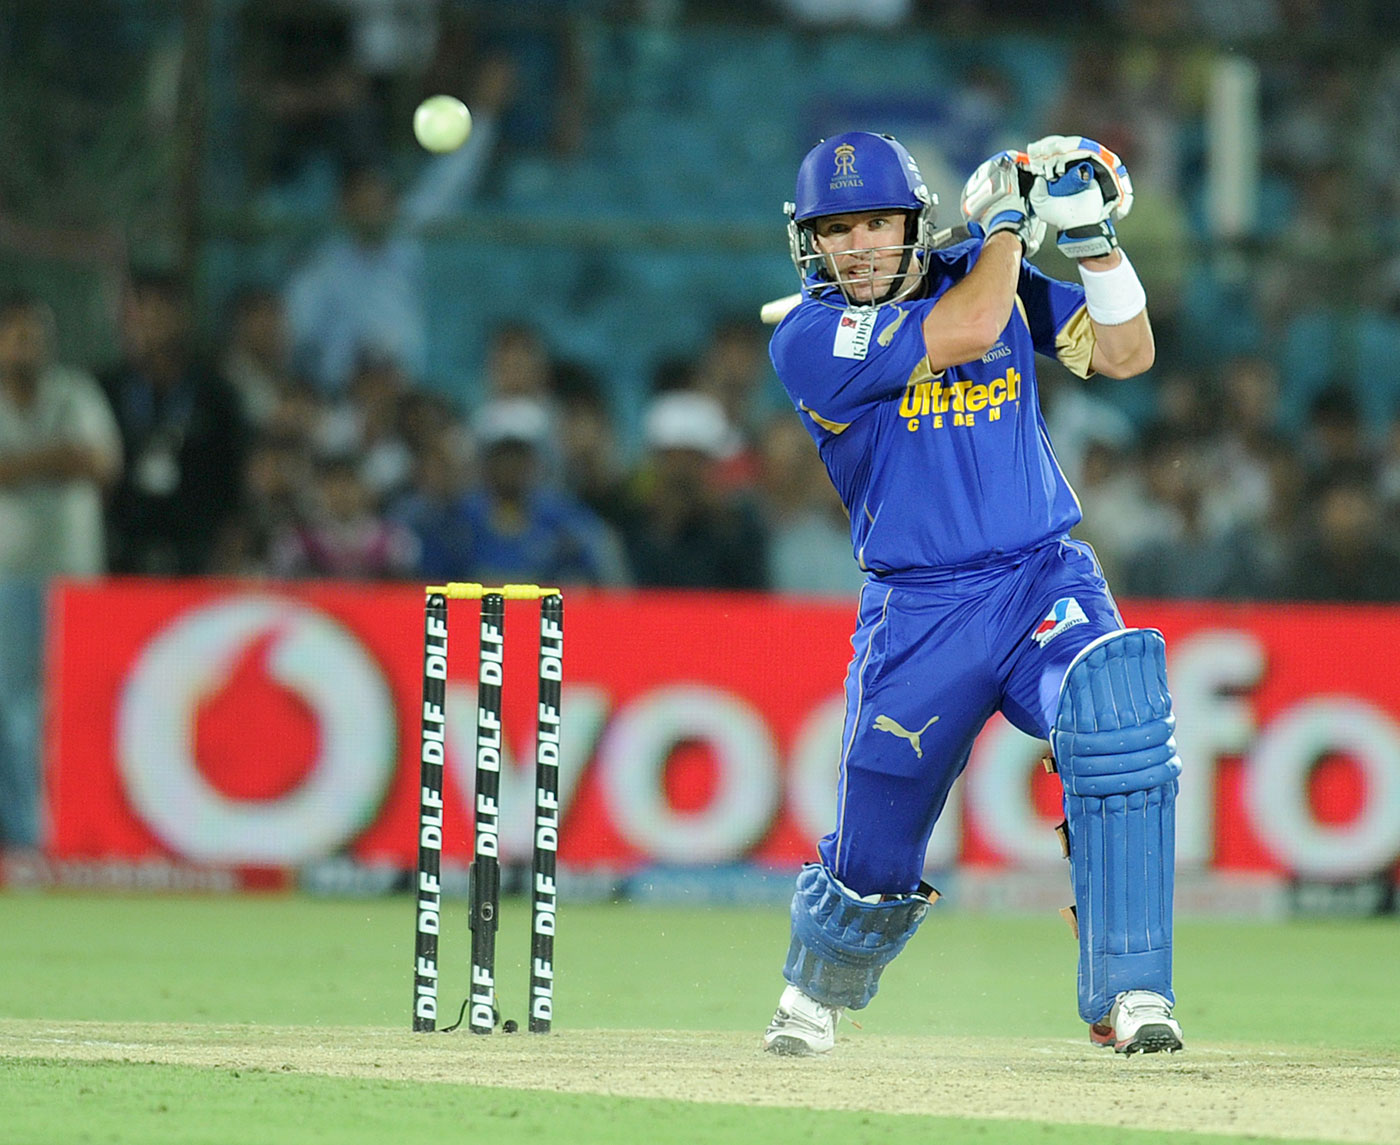 Fast-bowler slayer: Rajasthan Royals' use of Brad Hodge down the order defied conventional wisdom, but it paid off